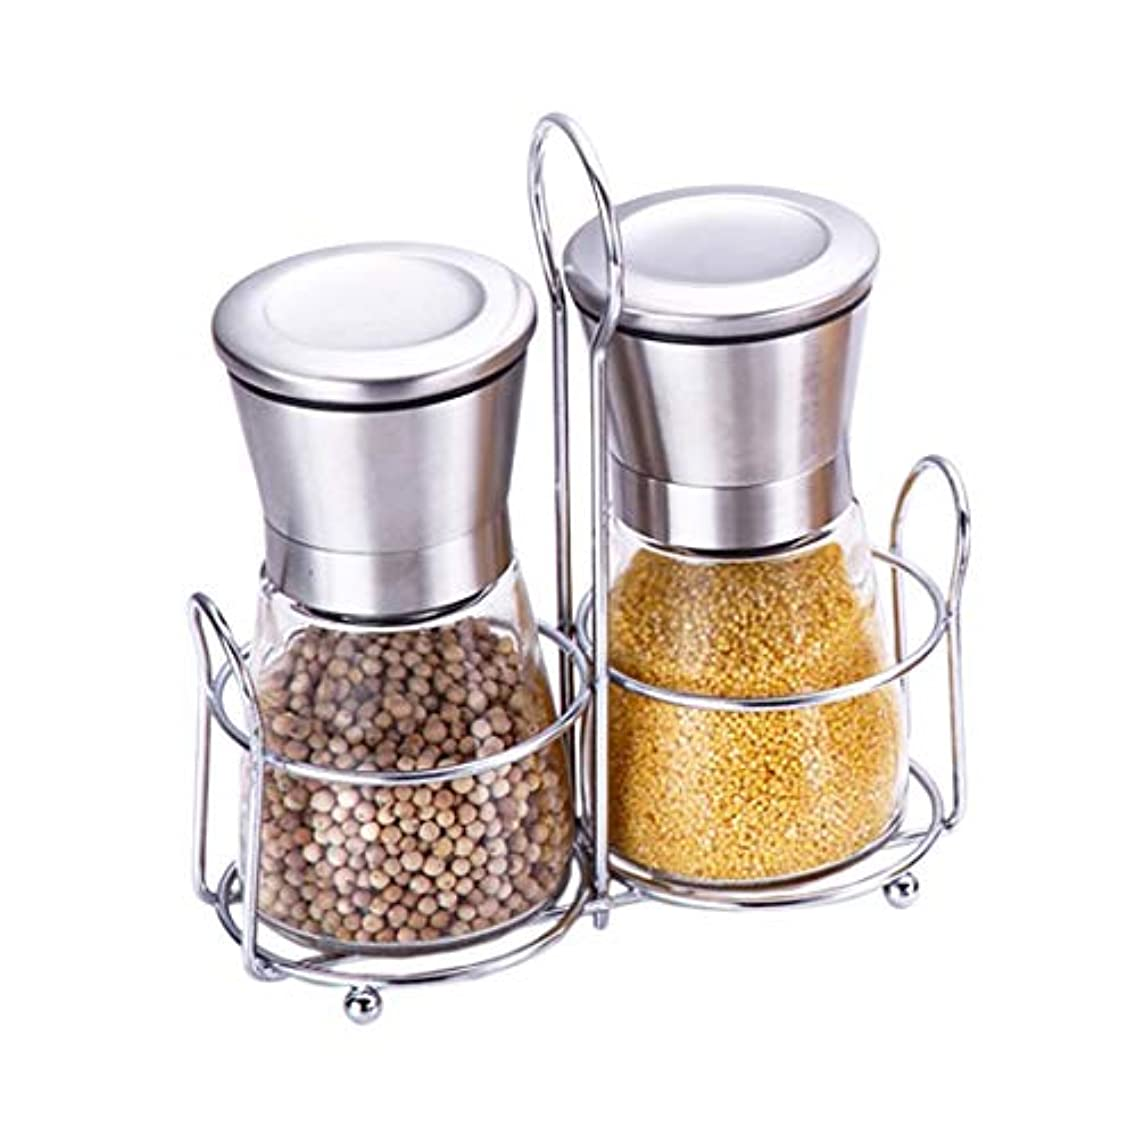 Radish Stars 2 pack of Salt & Pepper Grinder with a Stand Adjustable Ceramic Coarseness Stainless Steel Pepper Shaker Durable Storage Containers for Table Kitchen (6.8